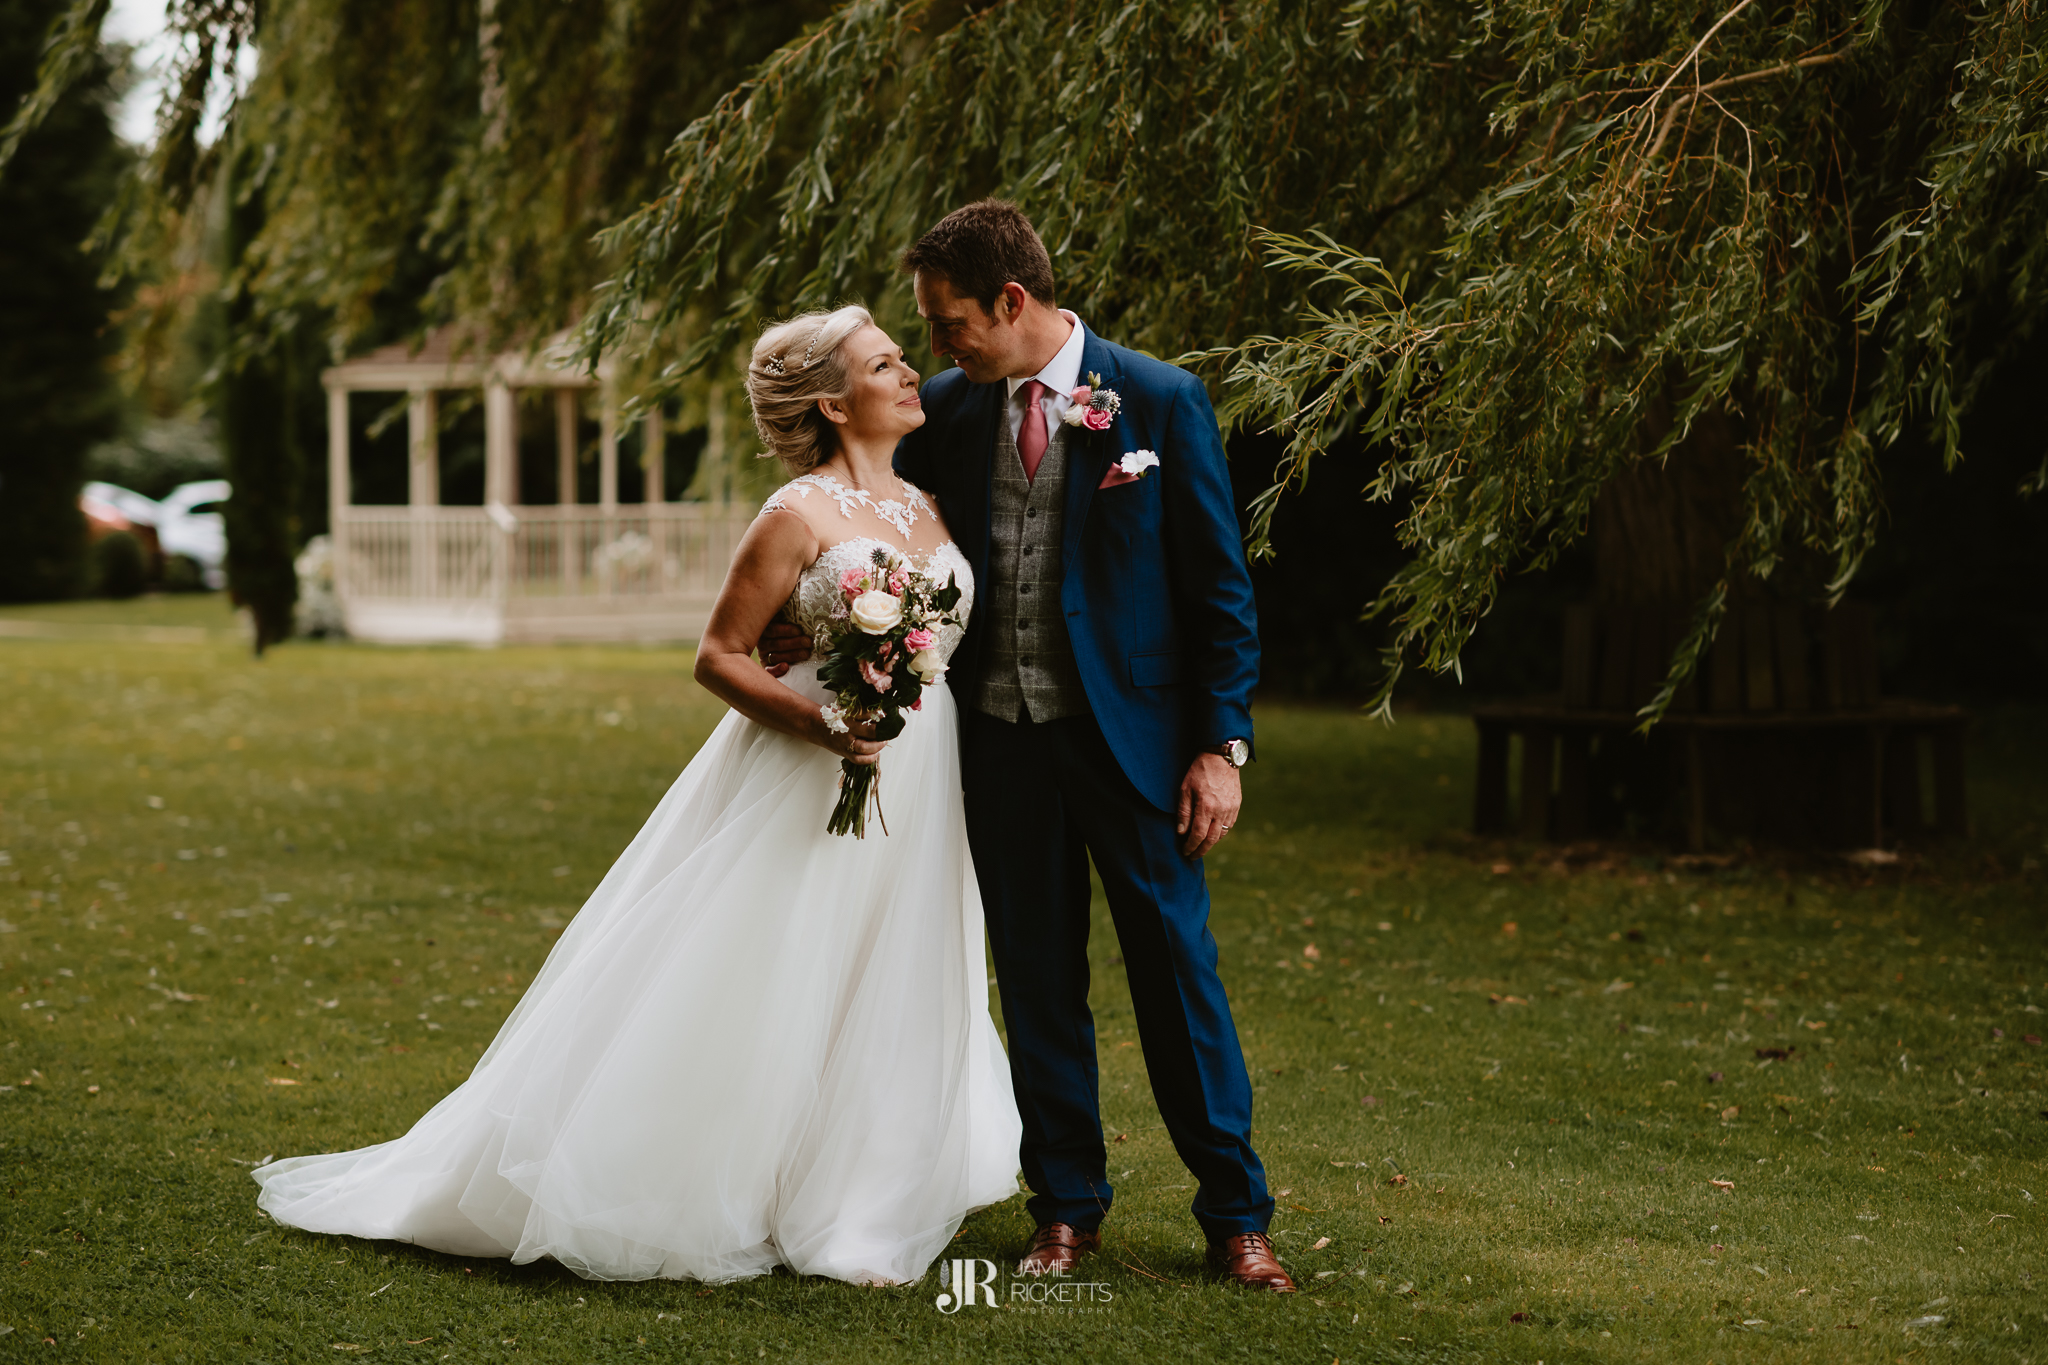 Wroxeter-Hotel-Wedding-Photography-In-Shropshire-By-Shropshire-Wedding-Photographer-Jamie-Ricketts-109.JPG